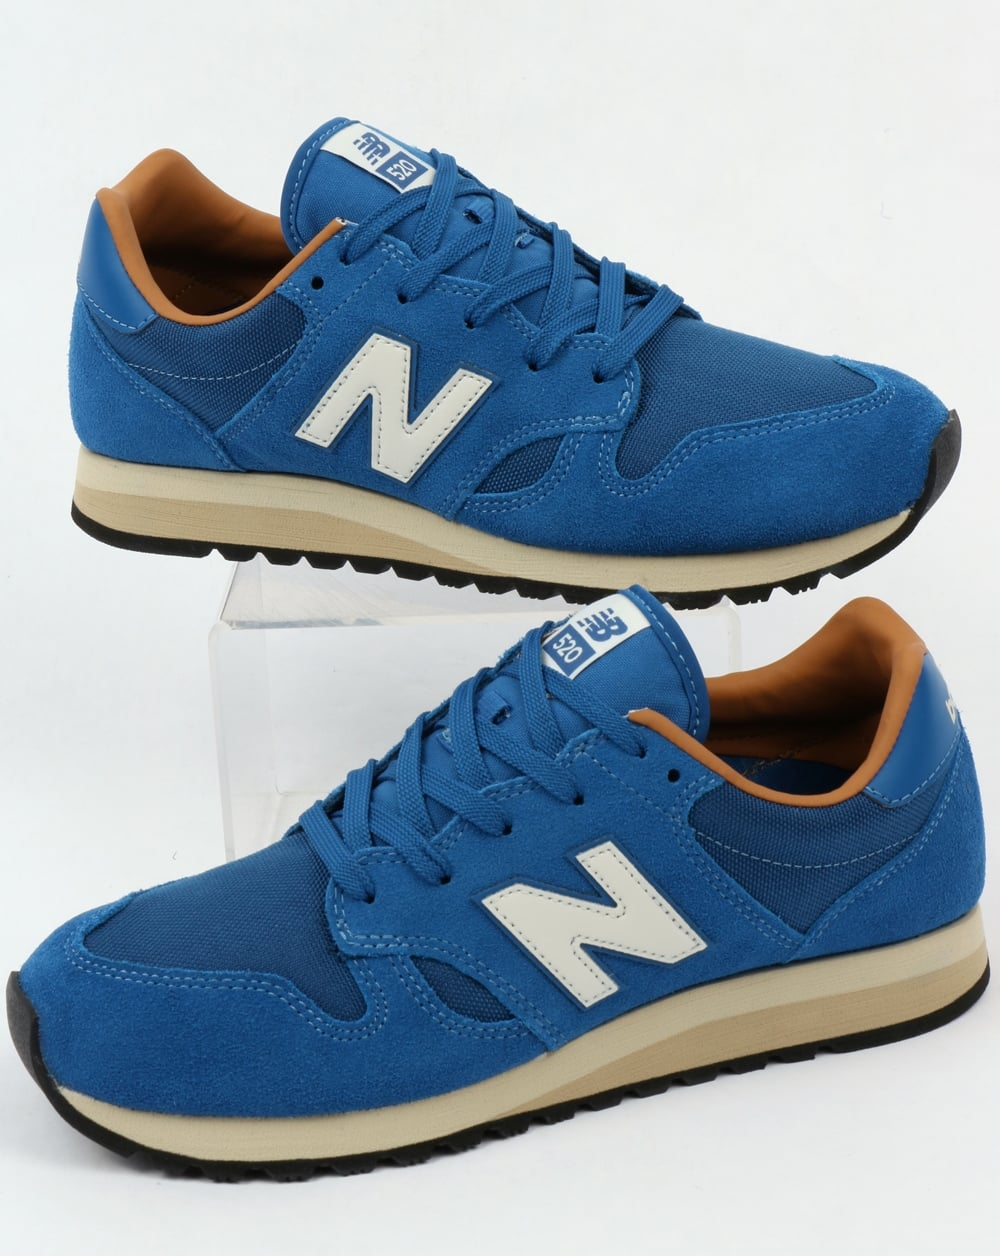 bd03259820bcf New Balance 520 Trainers Blue/Brown Sugar | 80s casual classics